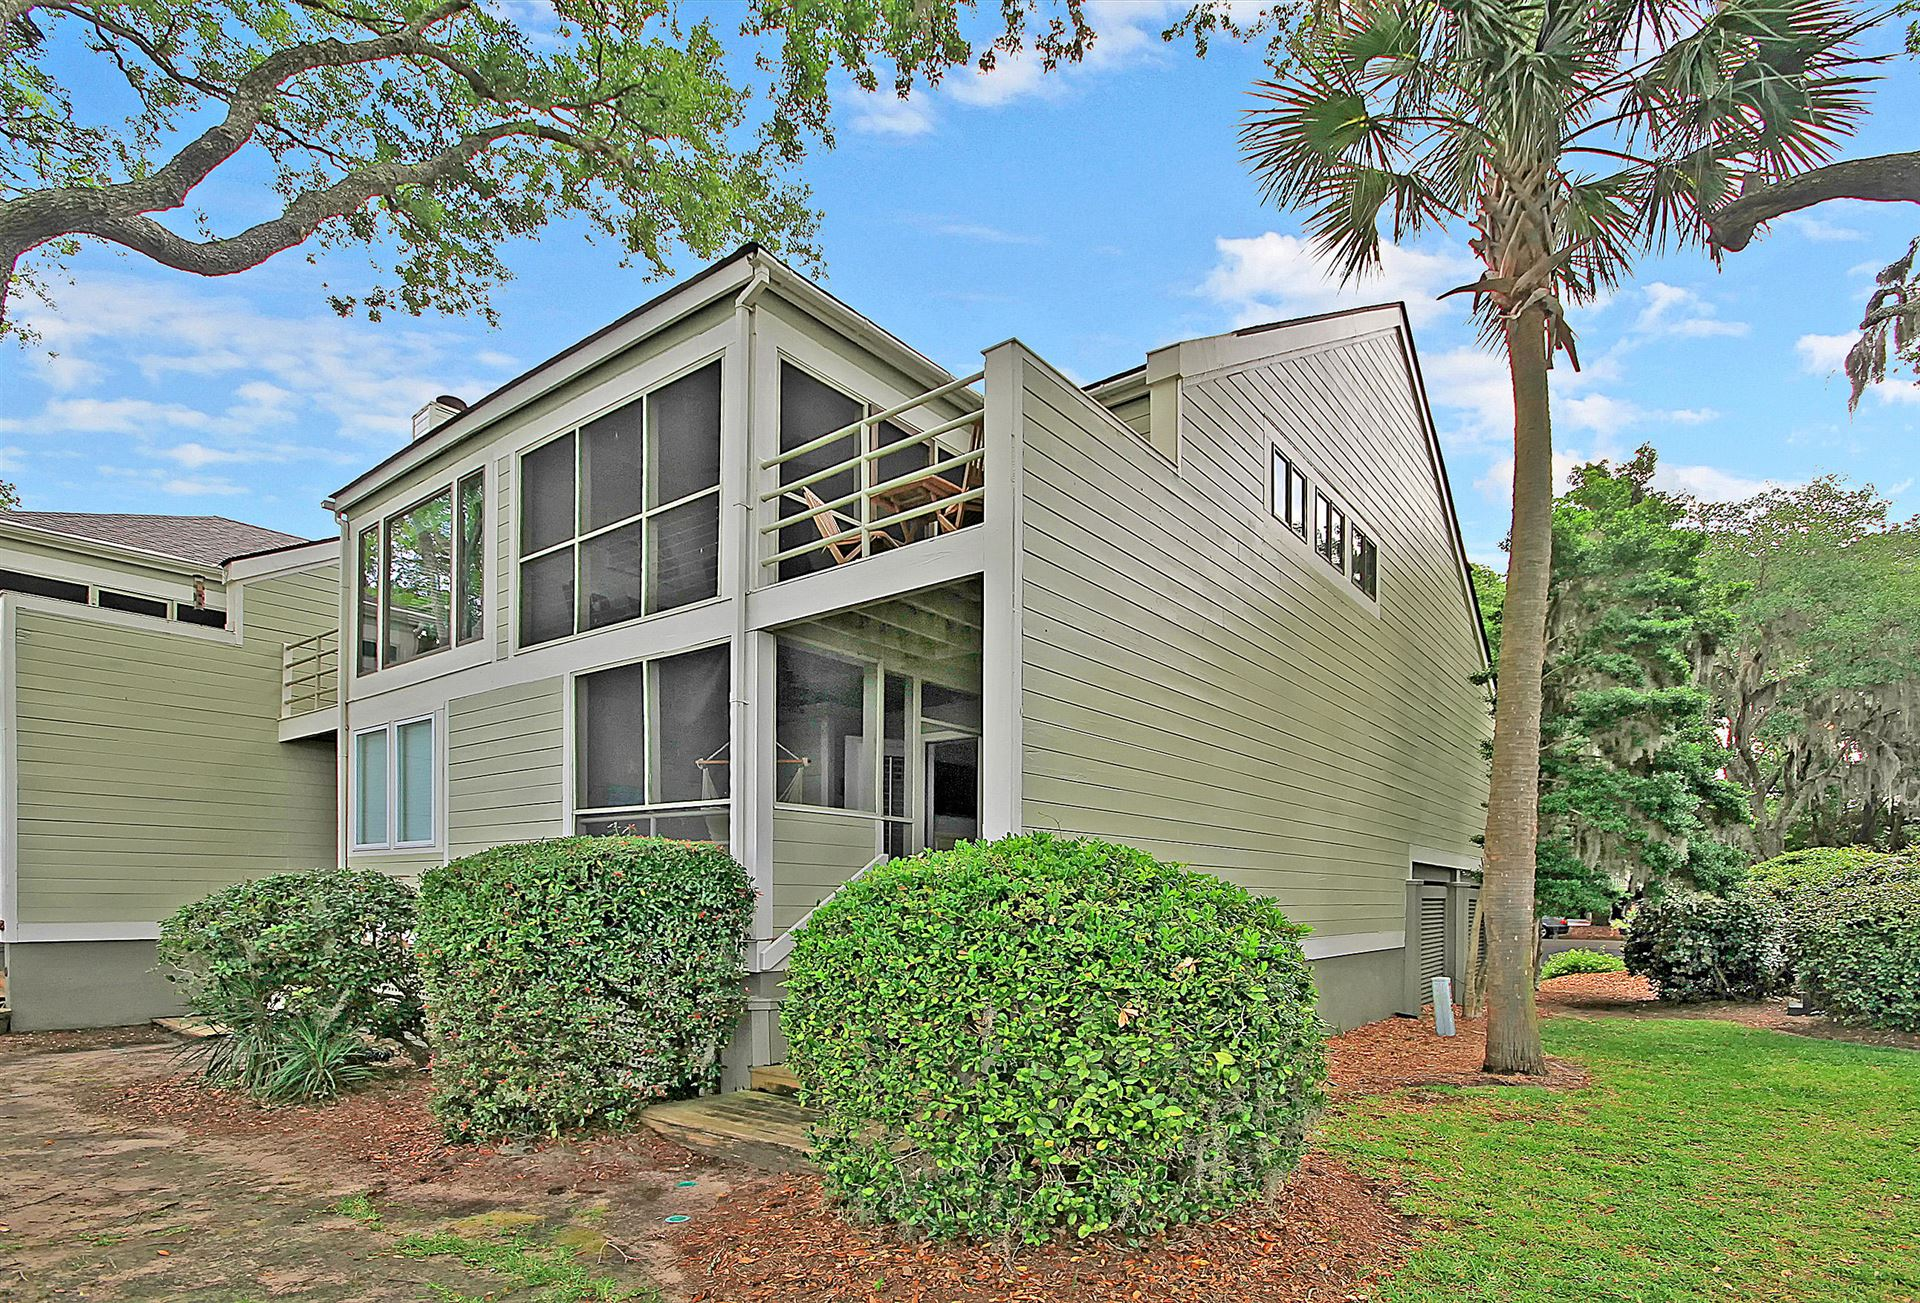 Photo of 1719 Live Oak Park (Shelter Cove), Seabrook Island, SC 29455 (MLS # 20014136)